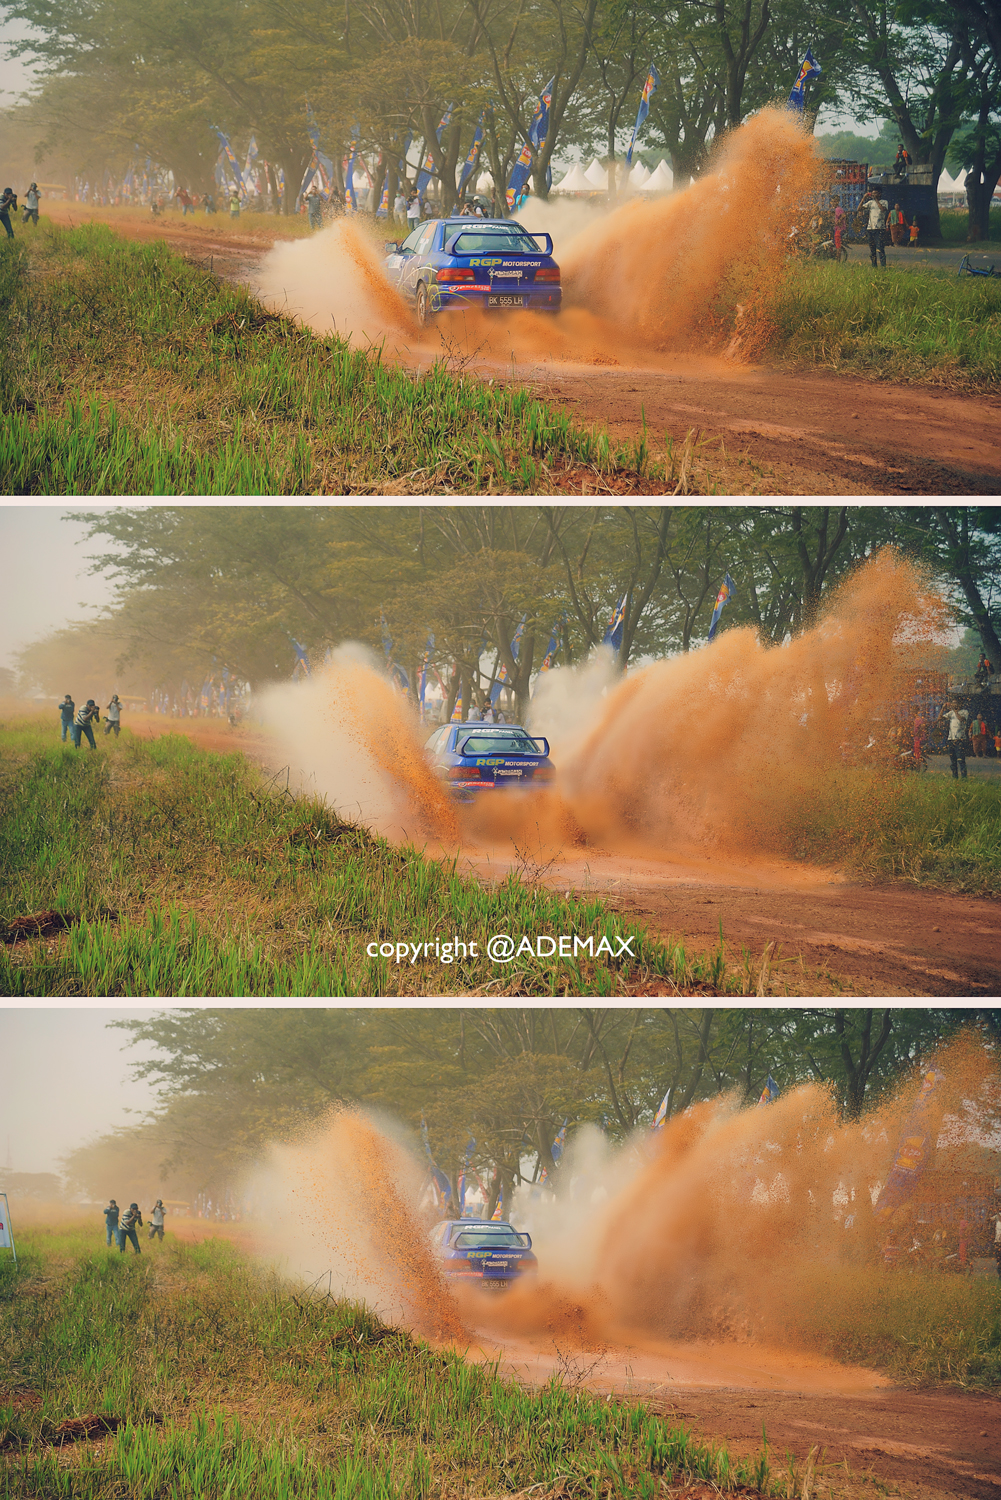 rally_ademax4_fb.jpg